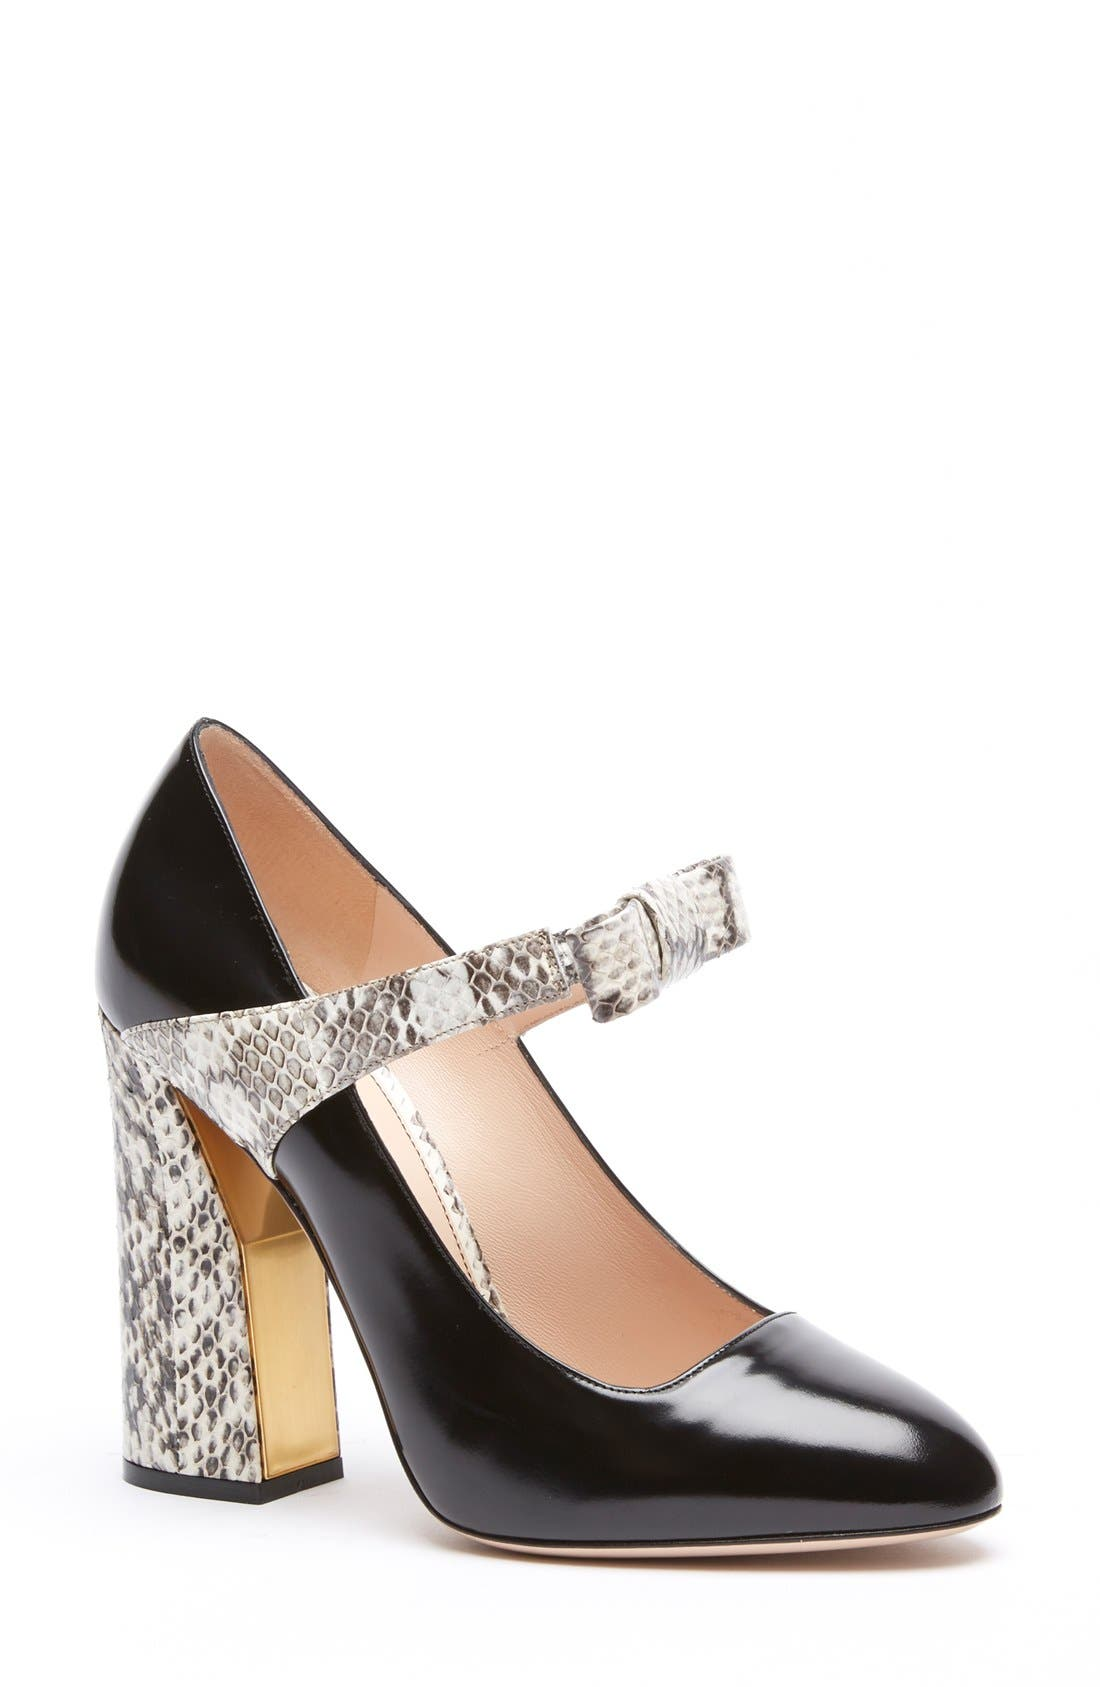 Alternate Image 1 Selected - Gucci 'Nimue' Mary Jane Pump (Women)